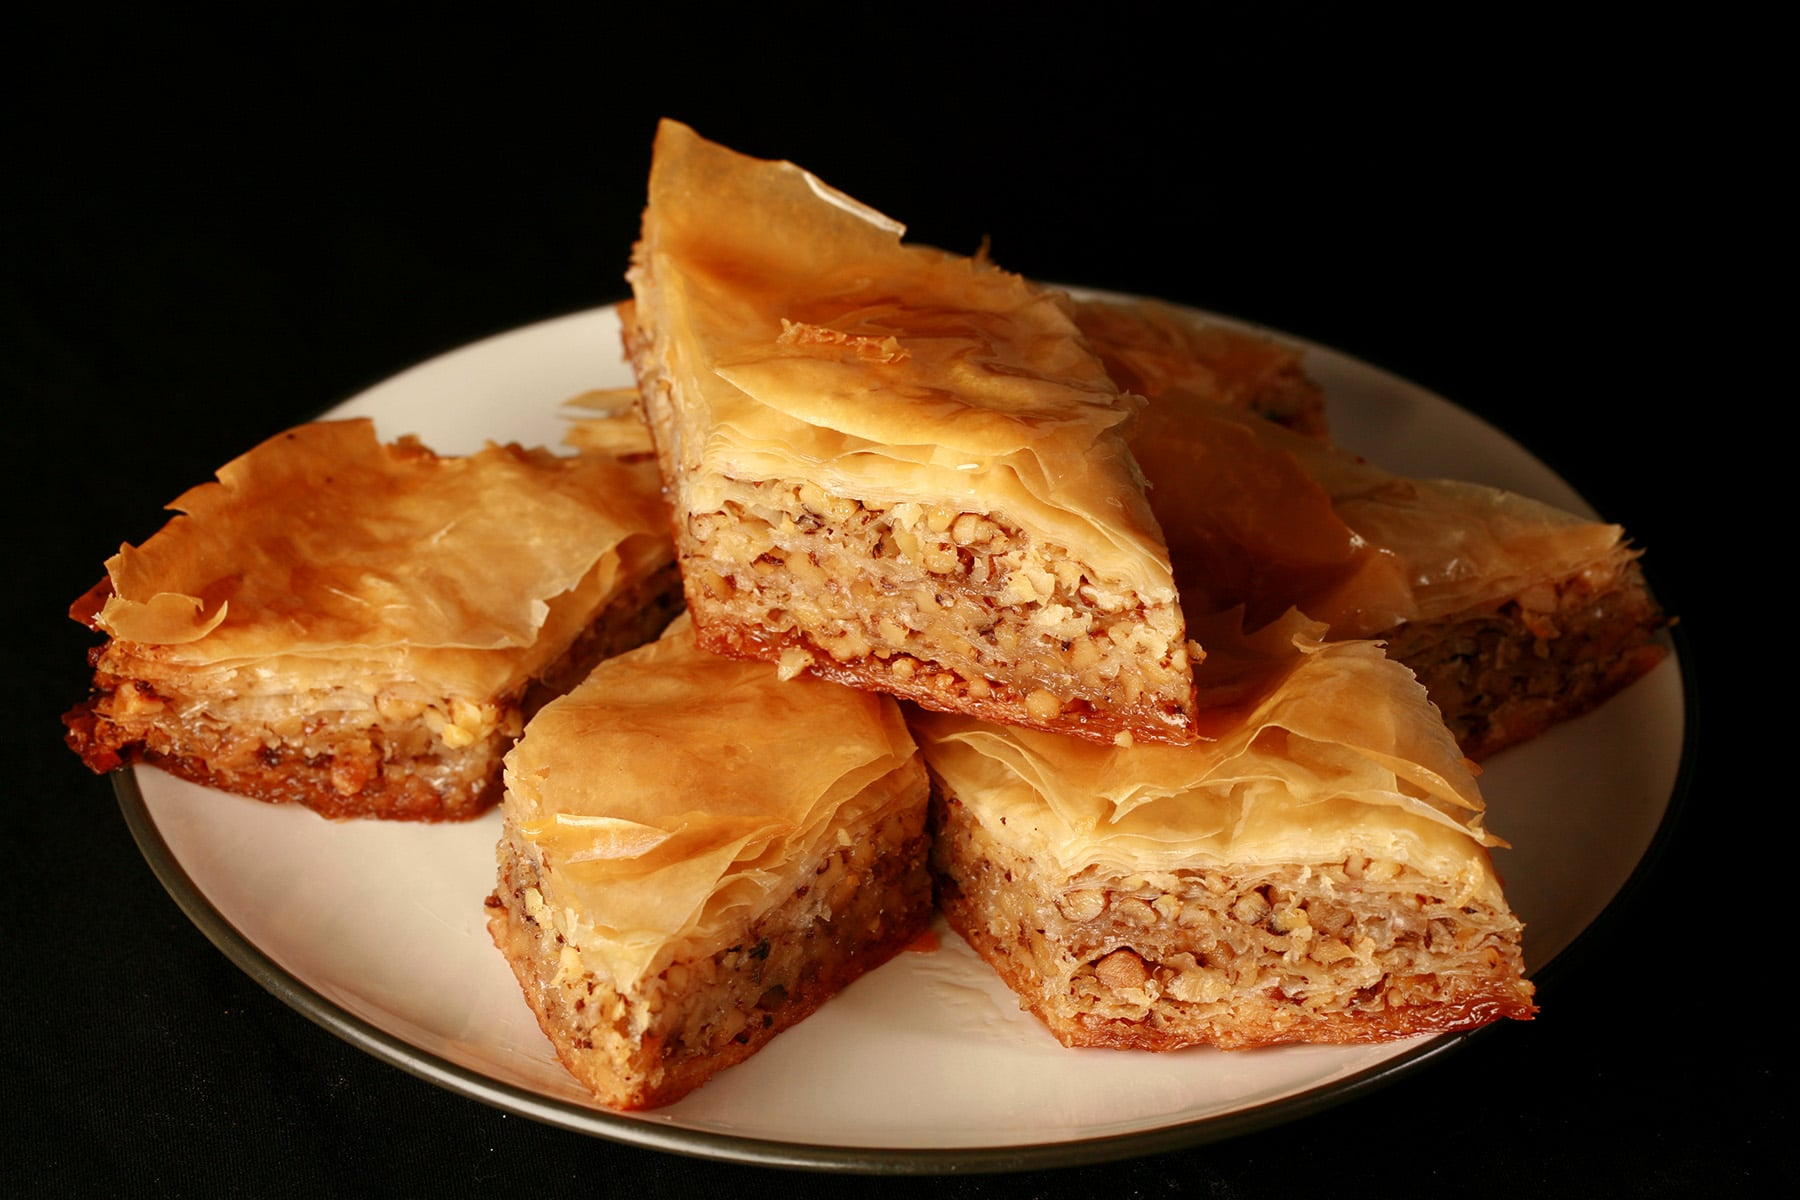 Diamond shaped pieces of maple-walnut baklava, on a small white plate.